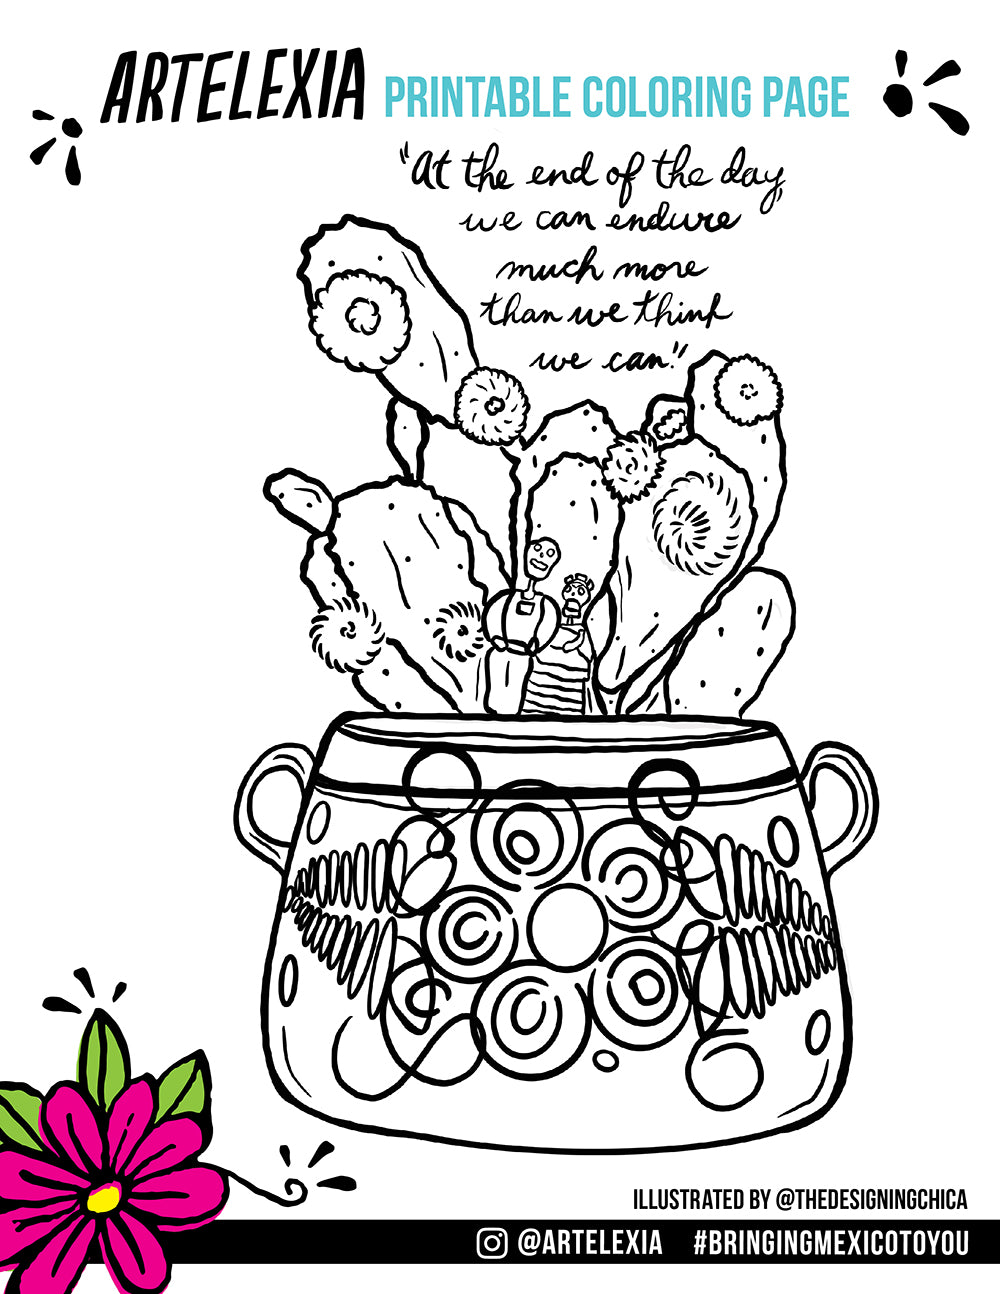 Artelexia's Free Printable Coloring Page by The Designing Chica